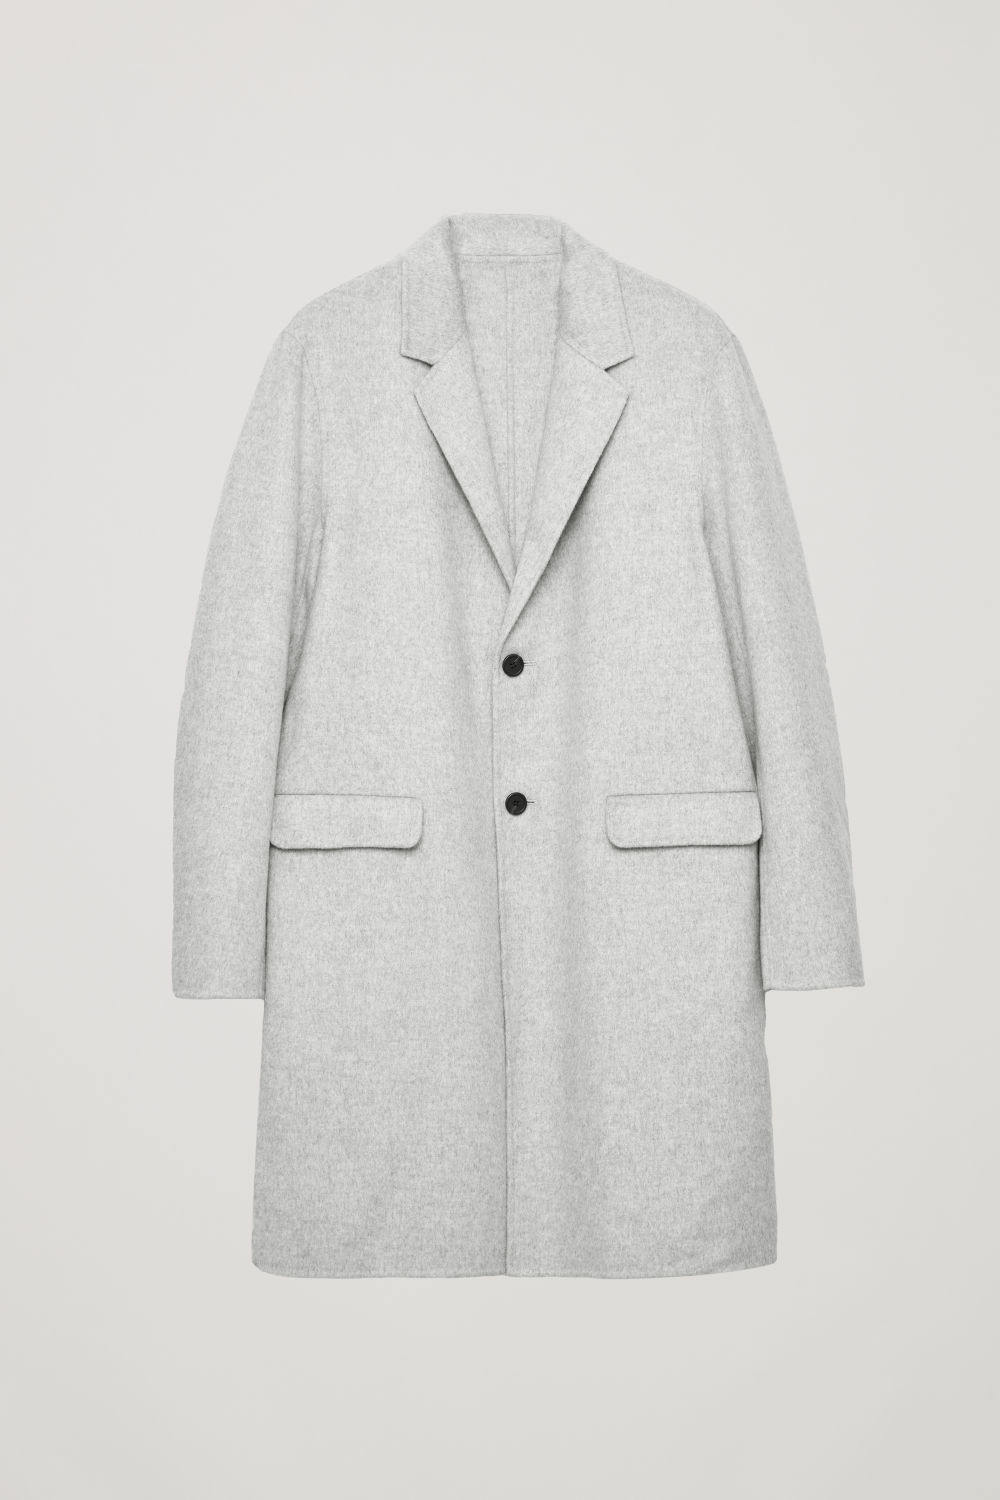 DECONSTRUCTED WOOL COAT